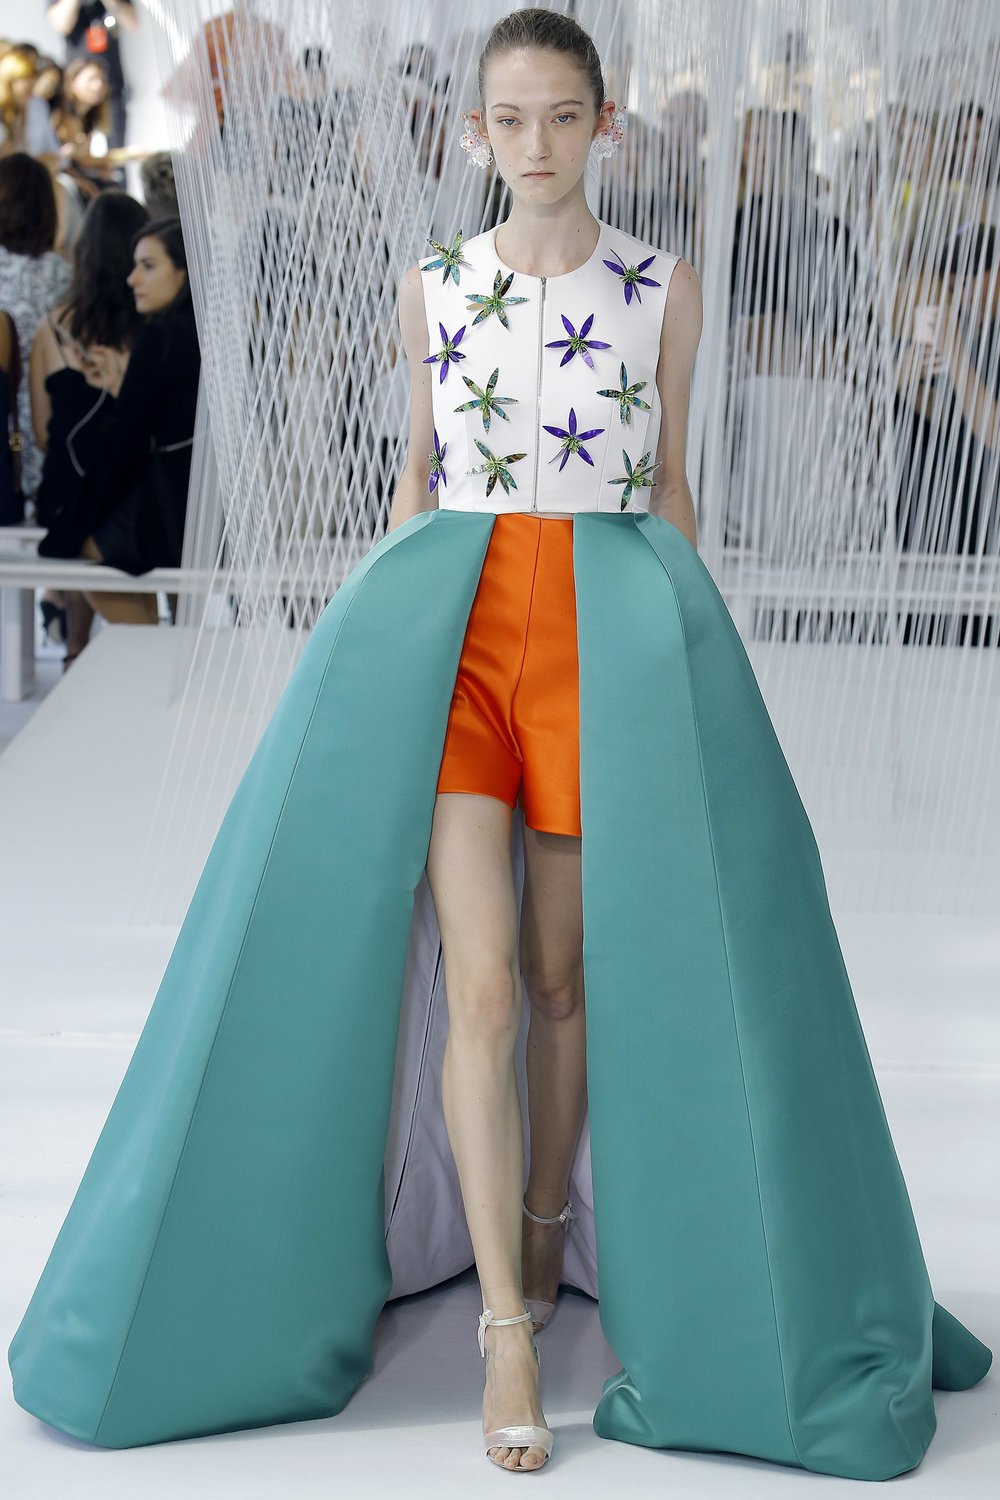 Delpozo Spring 2017. Image Luca Tombolini/Indigital.tv via Vogue.